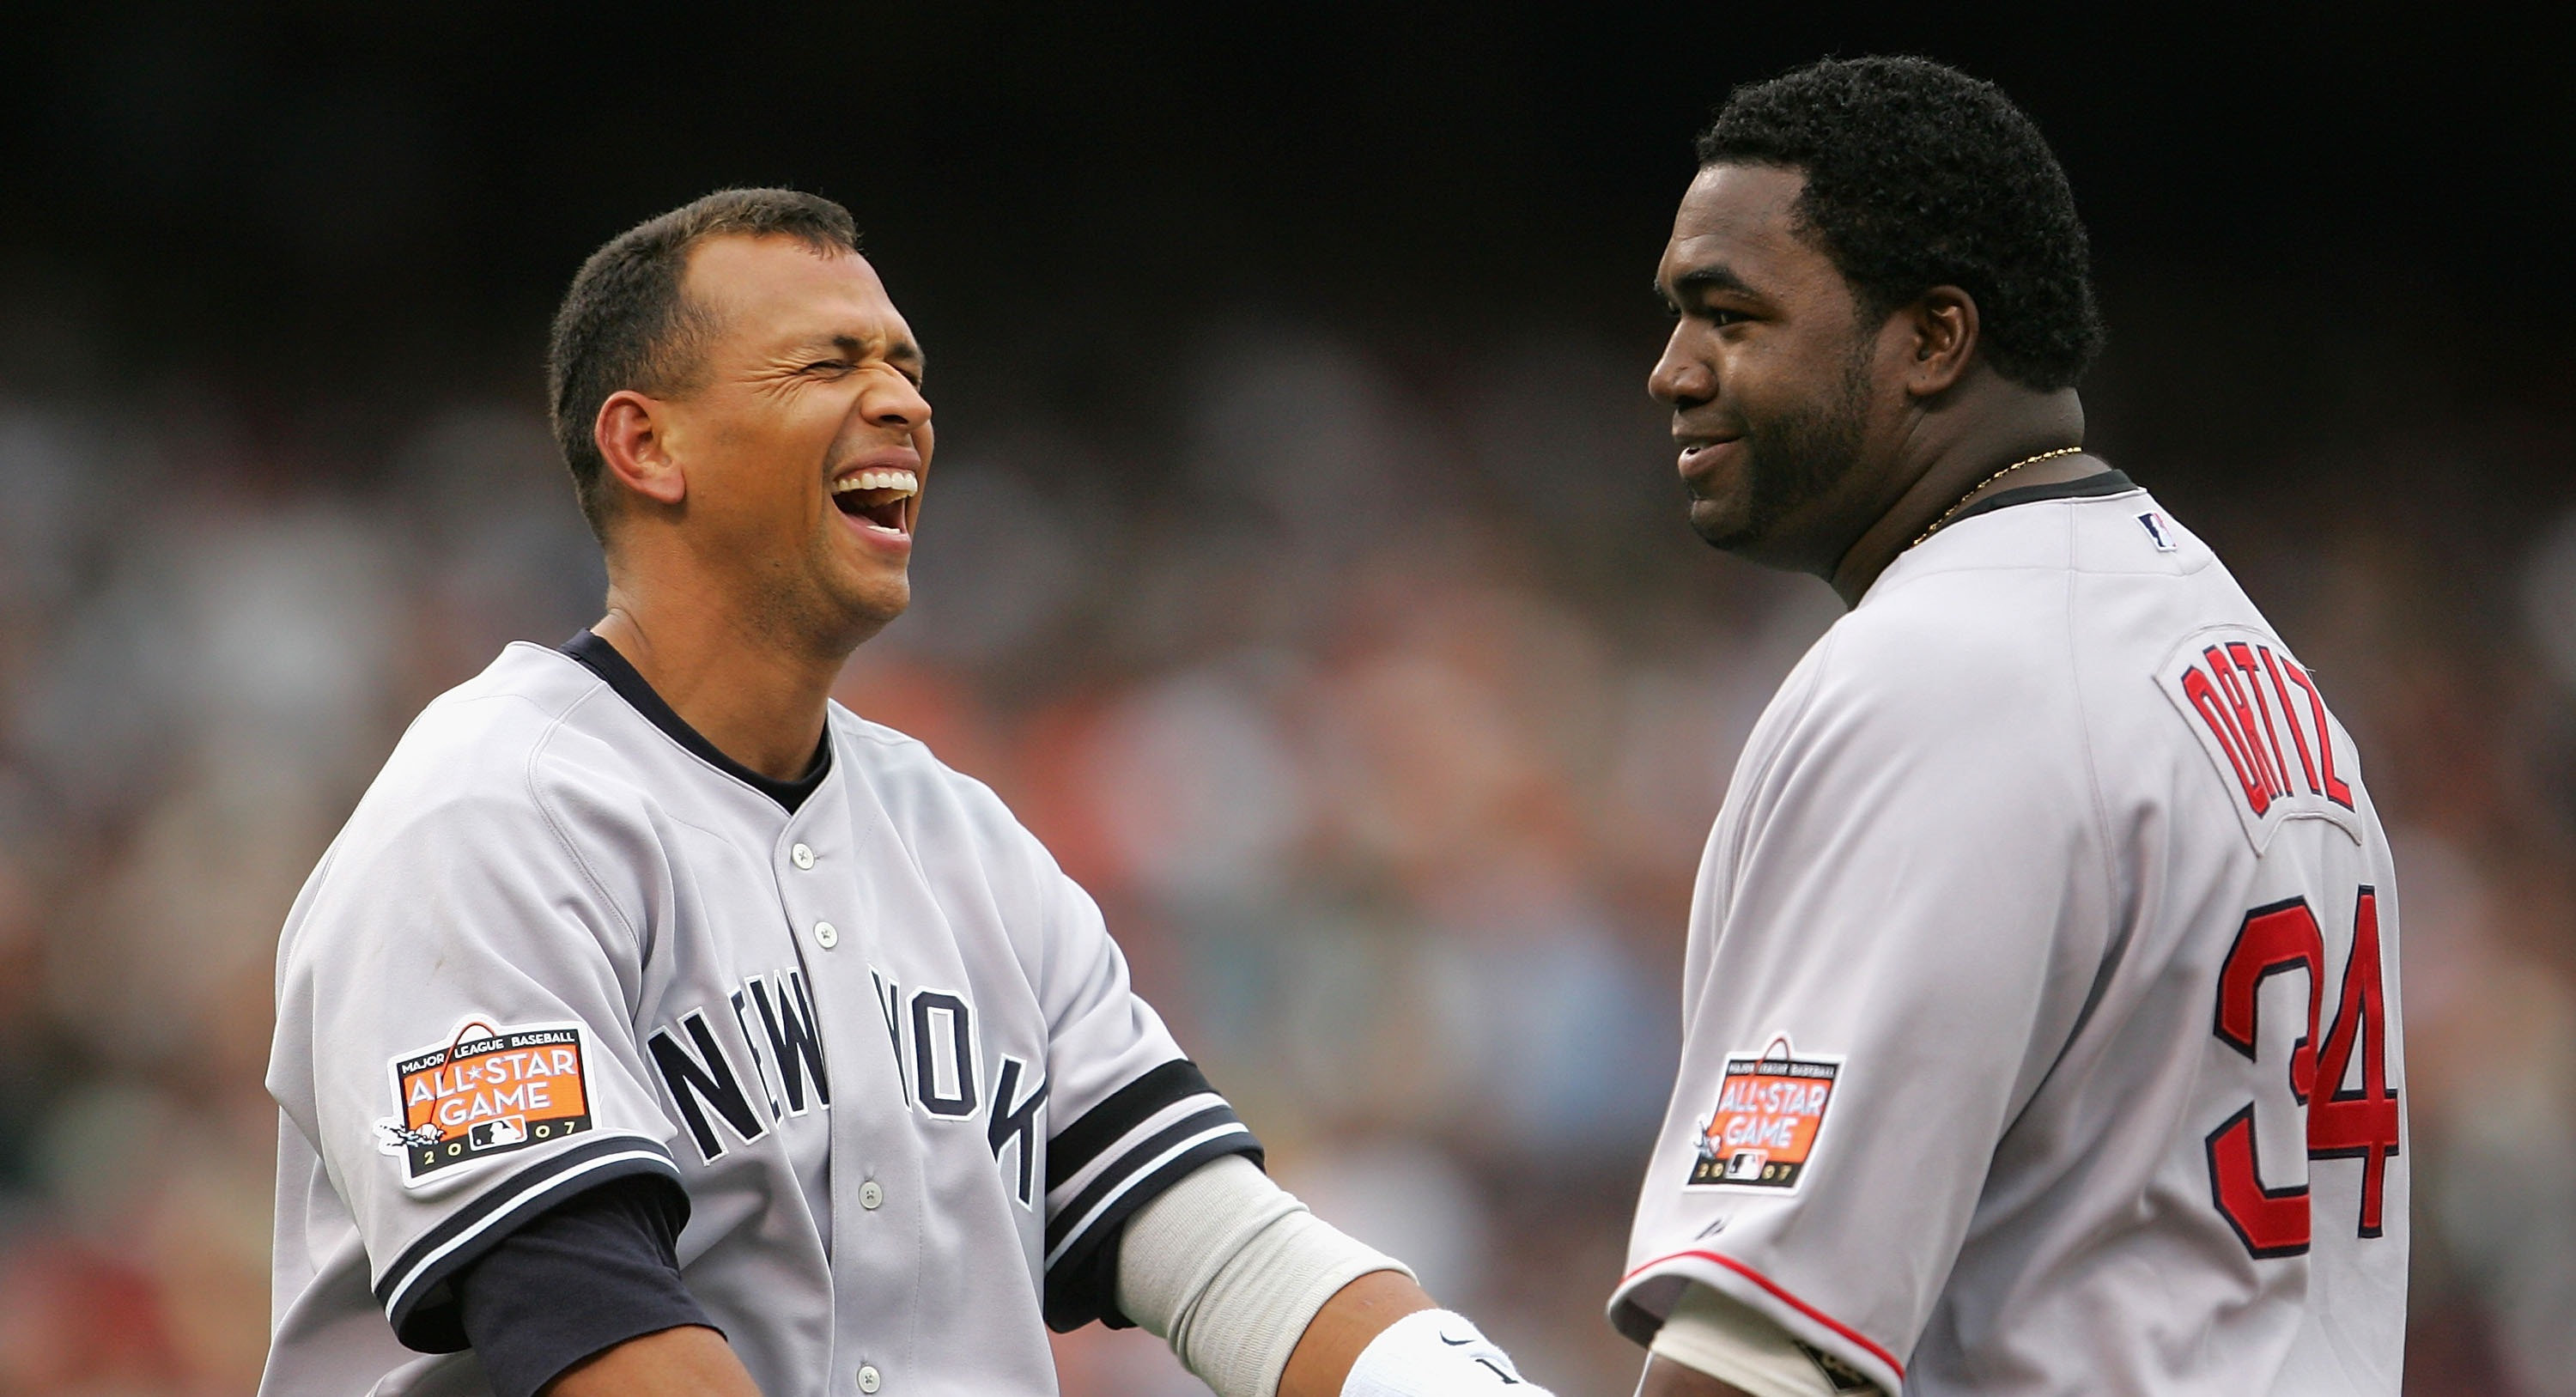 David Ortiz perfectly burns A-Rod after he picks Yankees to upset Indians